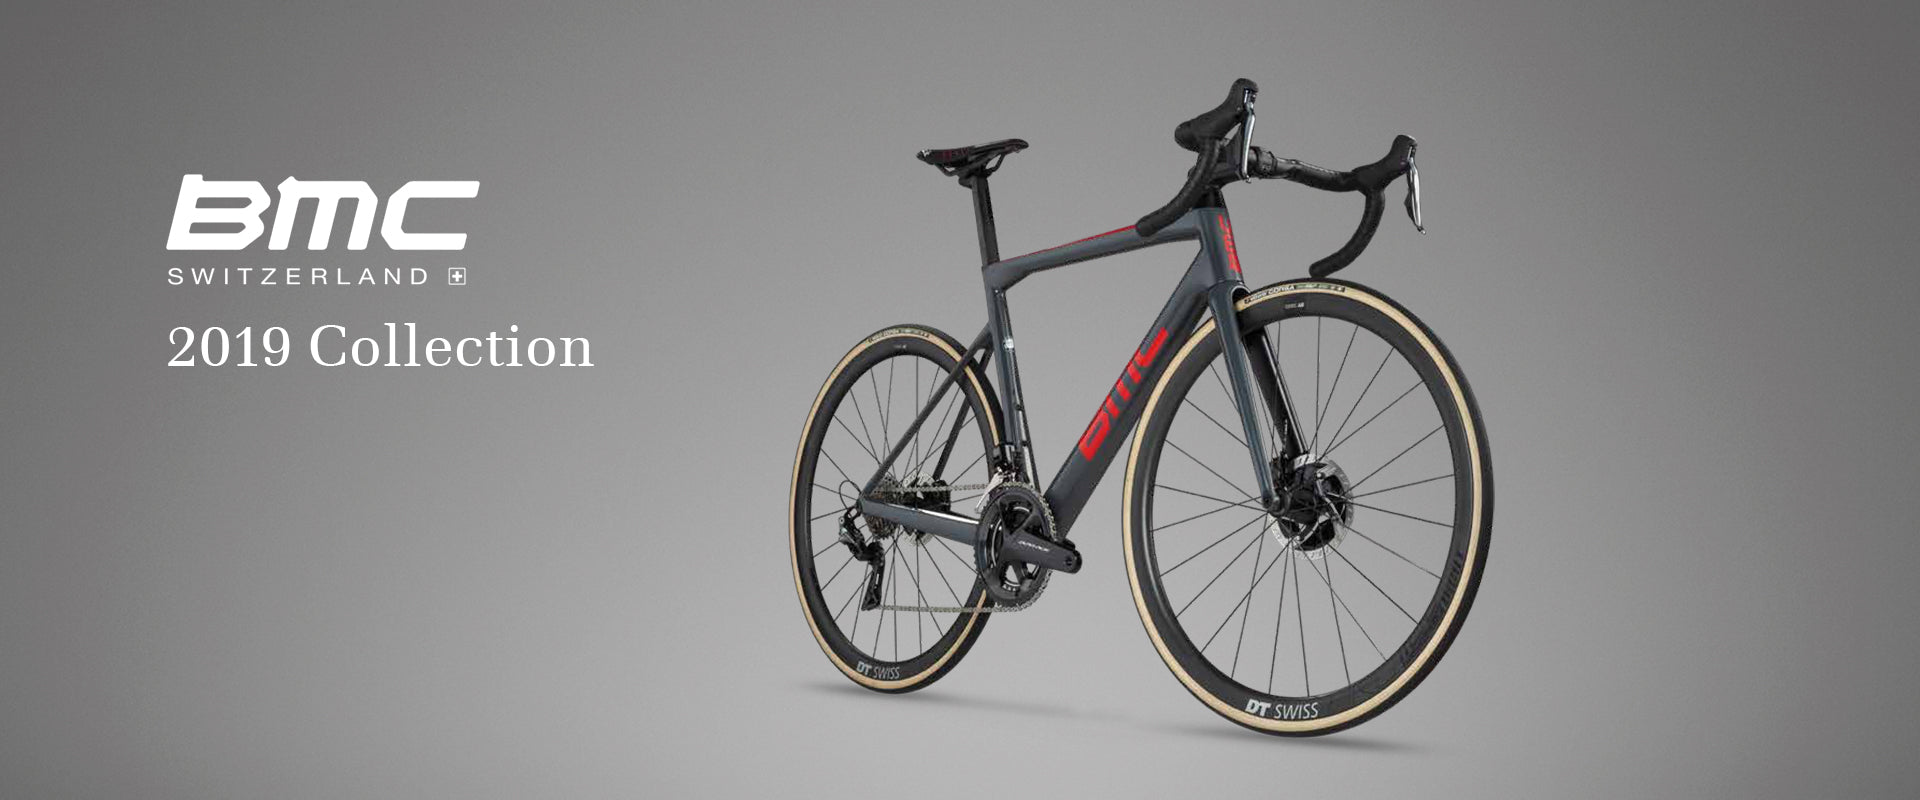 2019 BMC Road Bikes - Preview